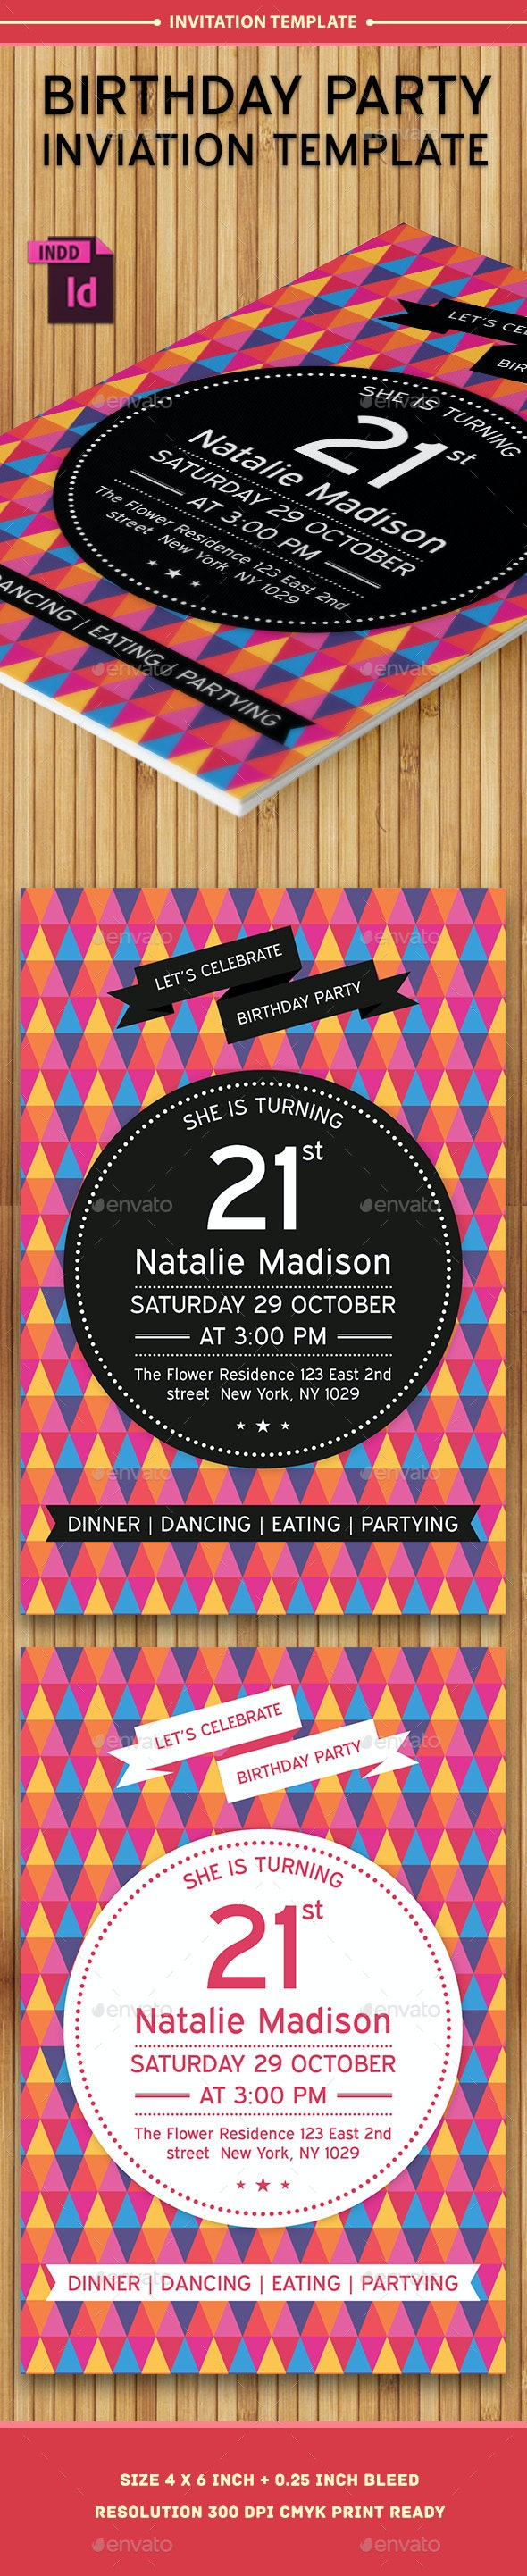 Birthday Party Invitation Template - Vol . 6 - Cards & Invites Print Templates